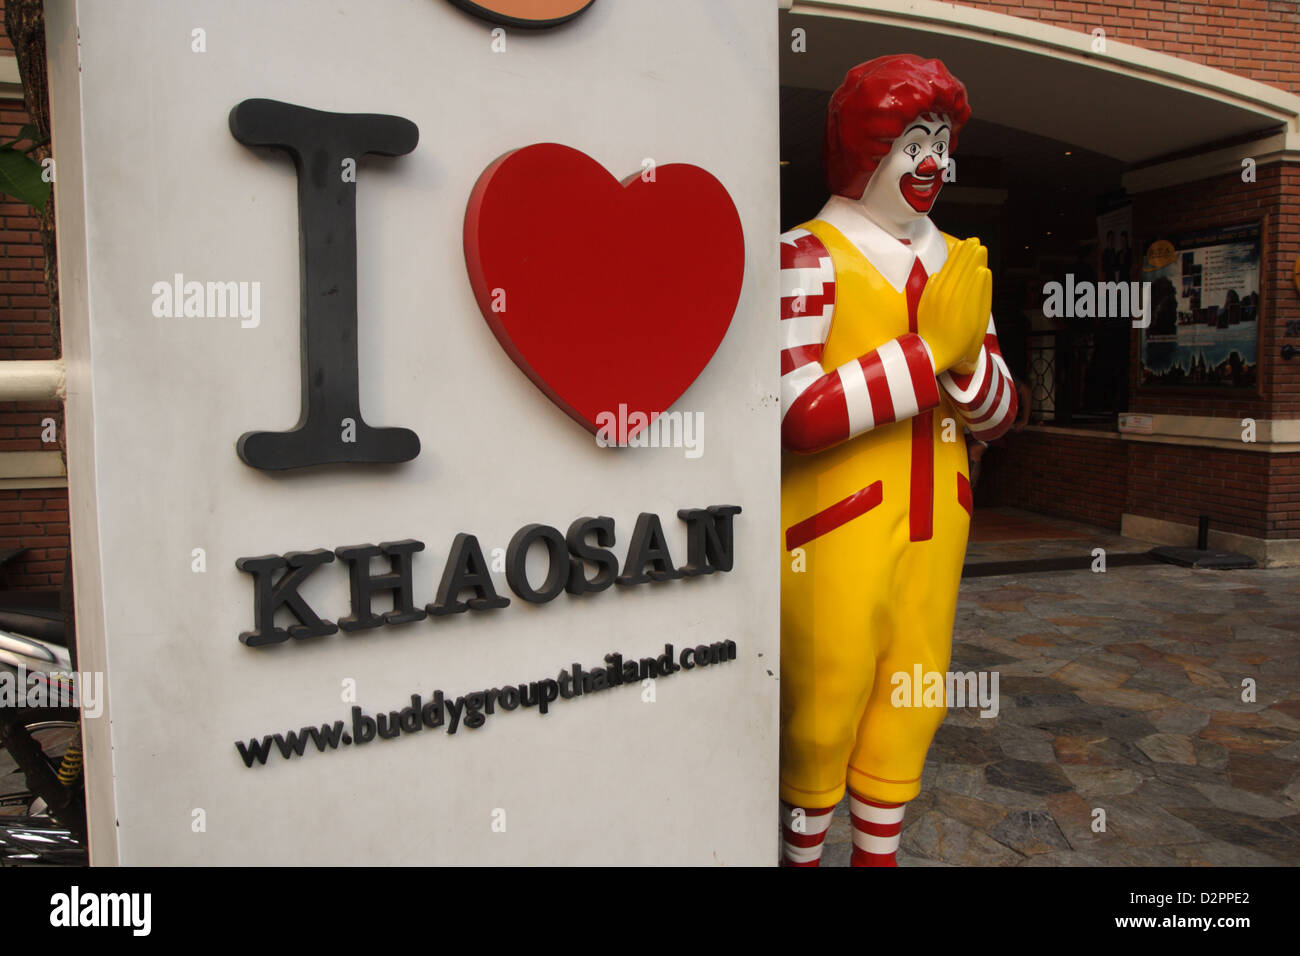 Ronald mcdonald in traditional thai greeting at khao san road in ronald mcdonald in traditional thai greeting at khao san road in bangkok thailand kristyandbryce Images